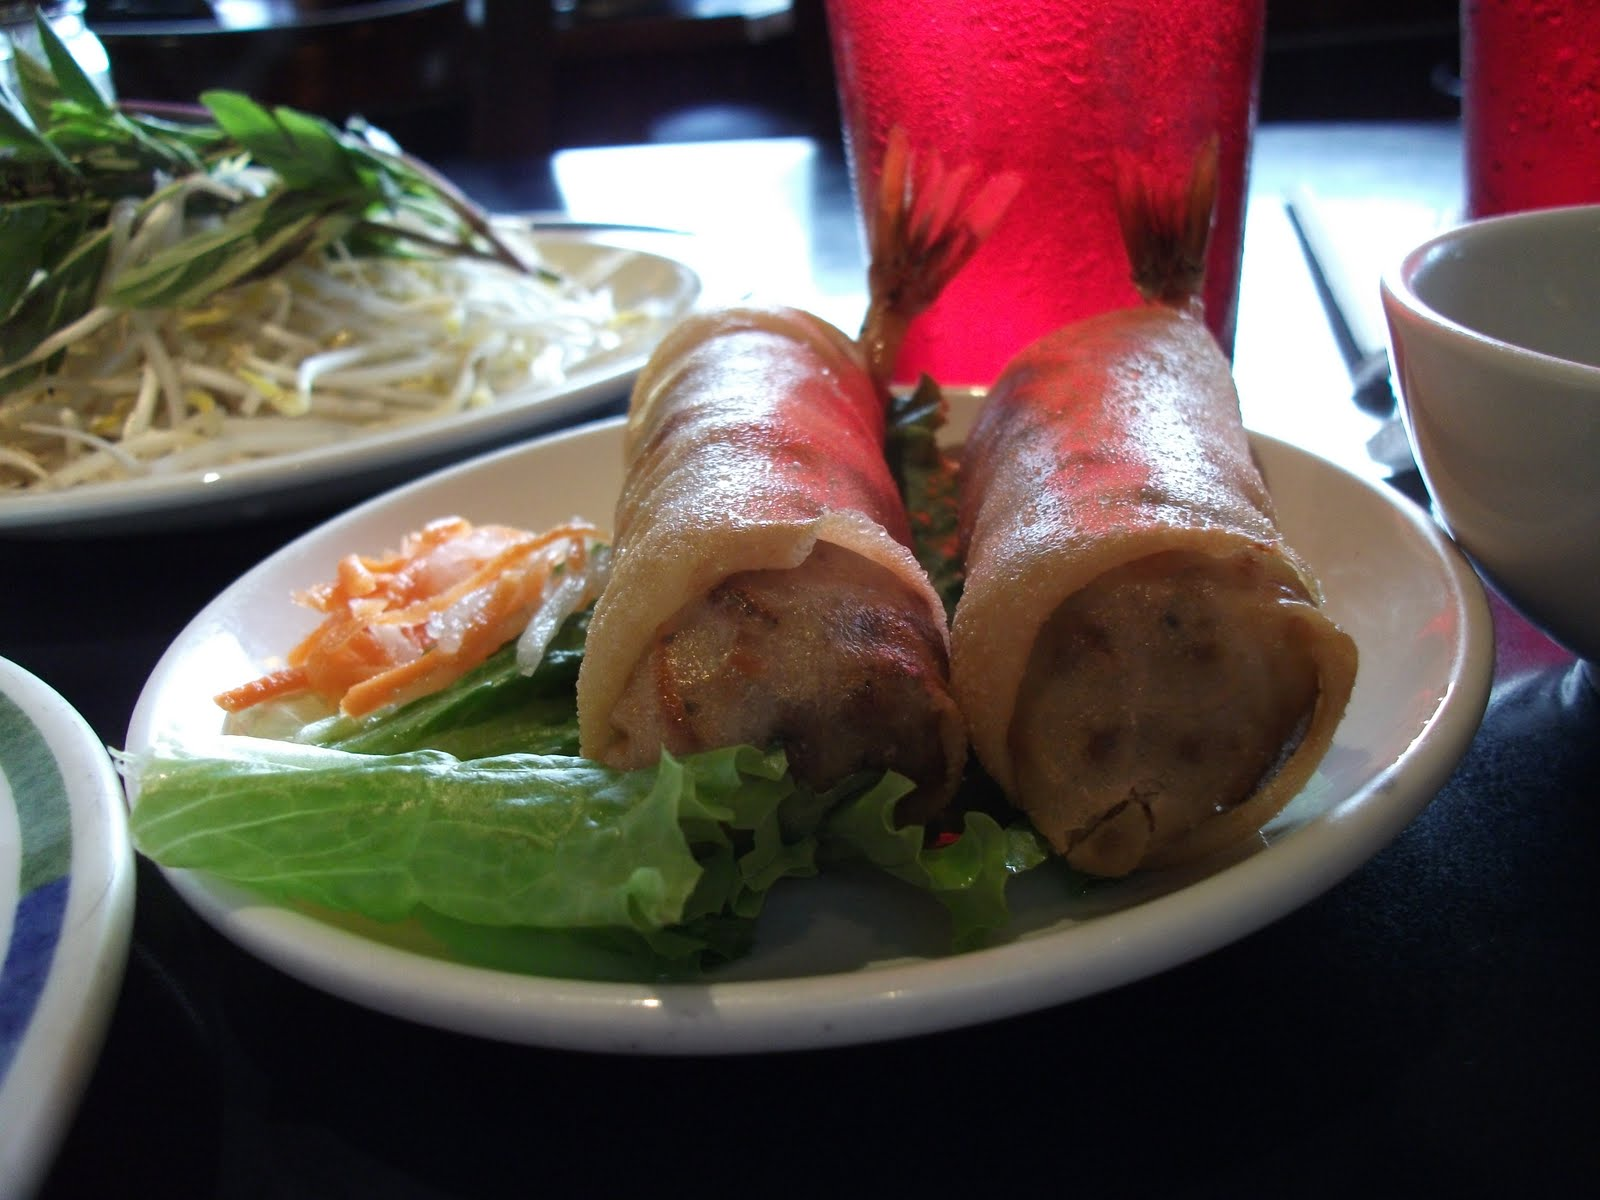 hopeless foodie: Quick Bites: What The Pho?